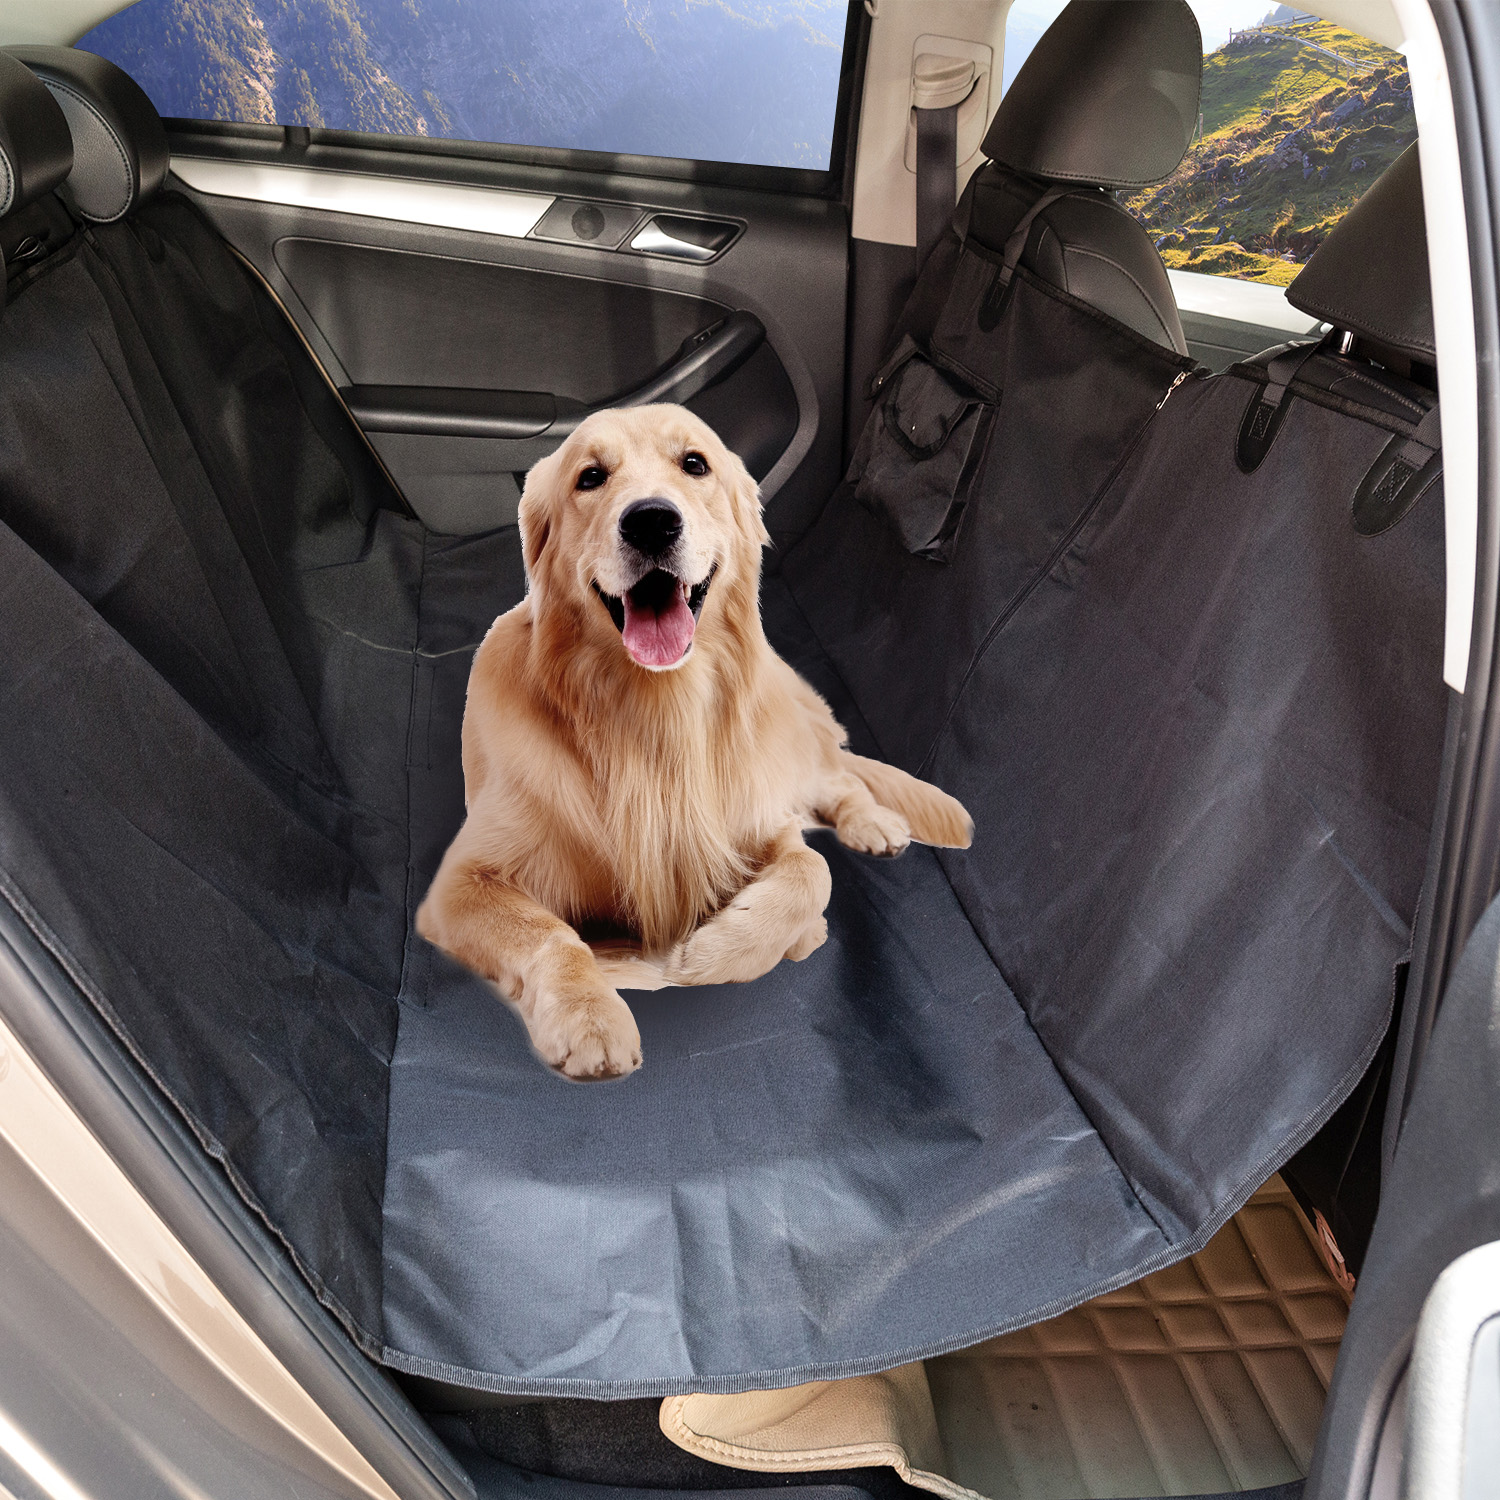 Dog Car Protector >> Us 14 99 25 Off Waterproof Quilted Non Slip Pet Dog Car Seat Cover Hammock Pet Accessories Mat Blanket Back Seat Protector In Dog Carriers From Home